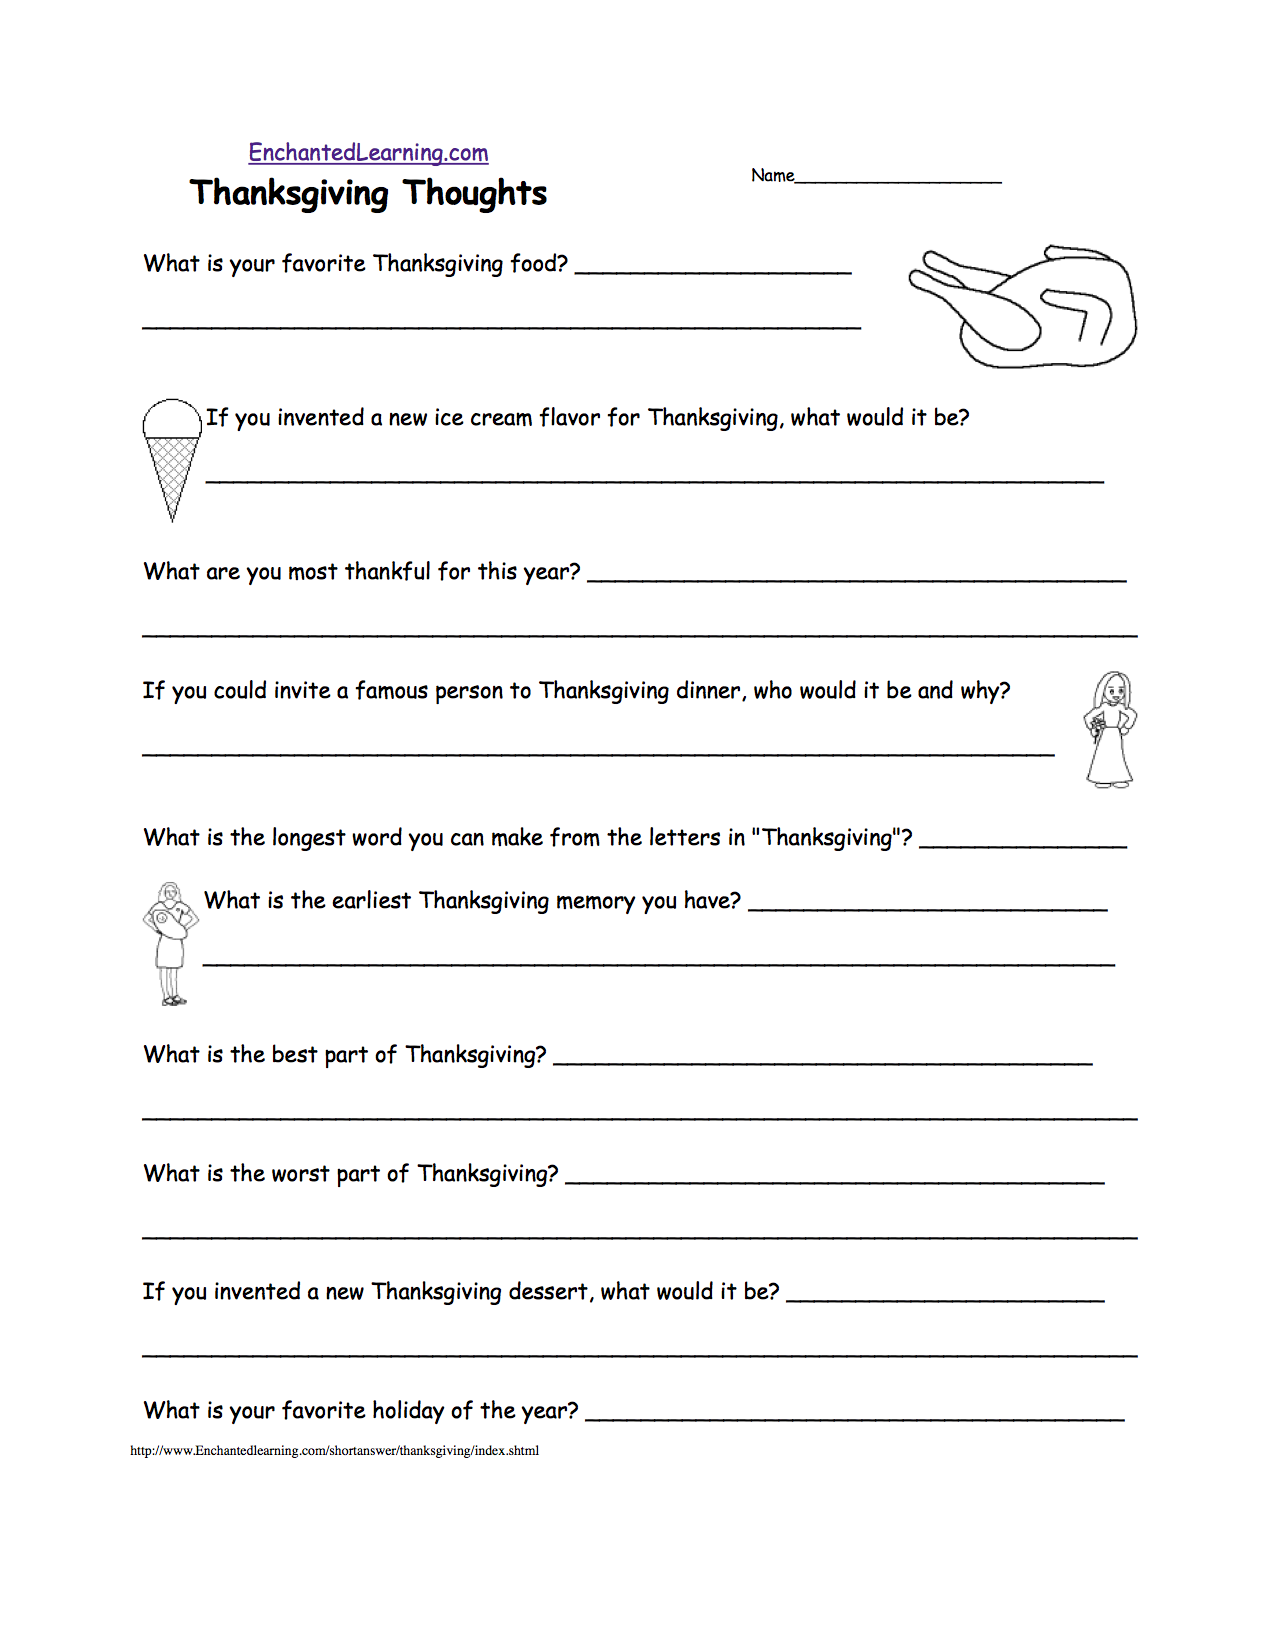 Worksheets Worksheets For Elementary Students thanksgiving crafts worksheets and activities thanksgiving